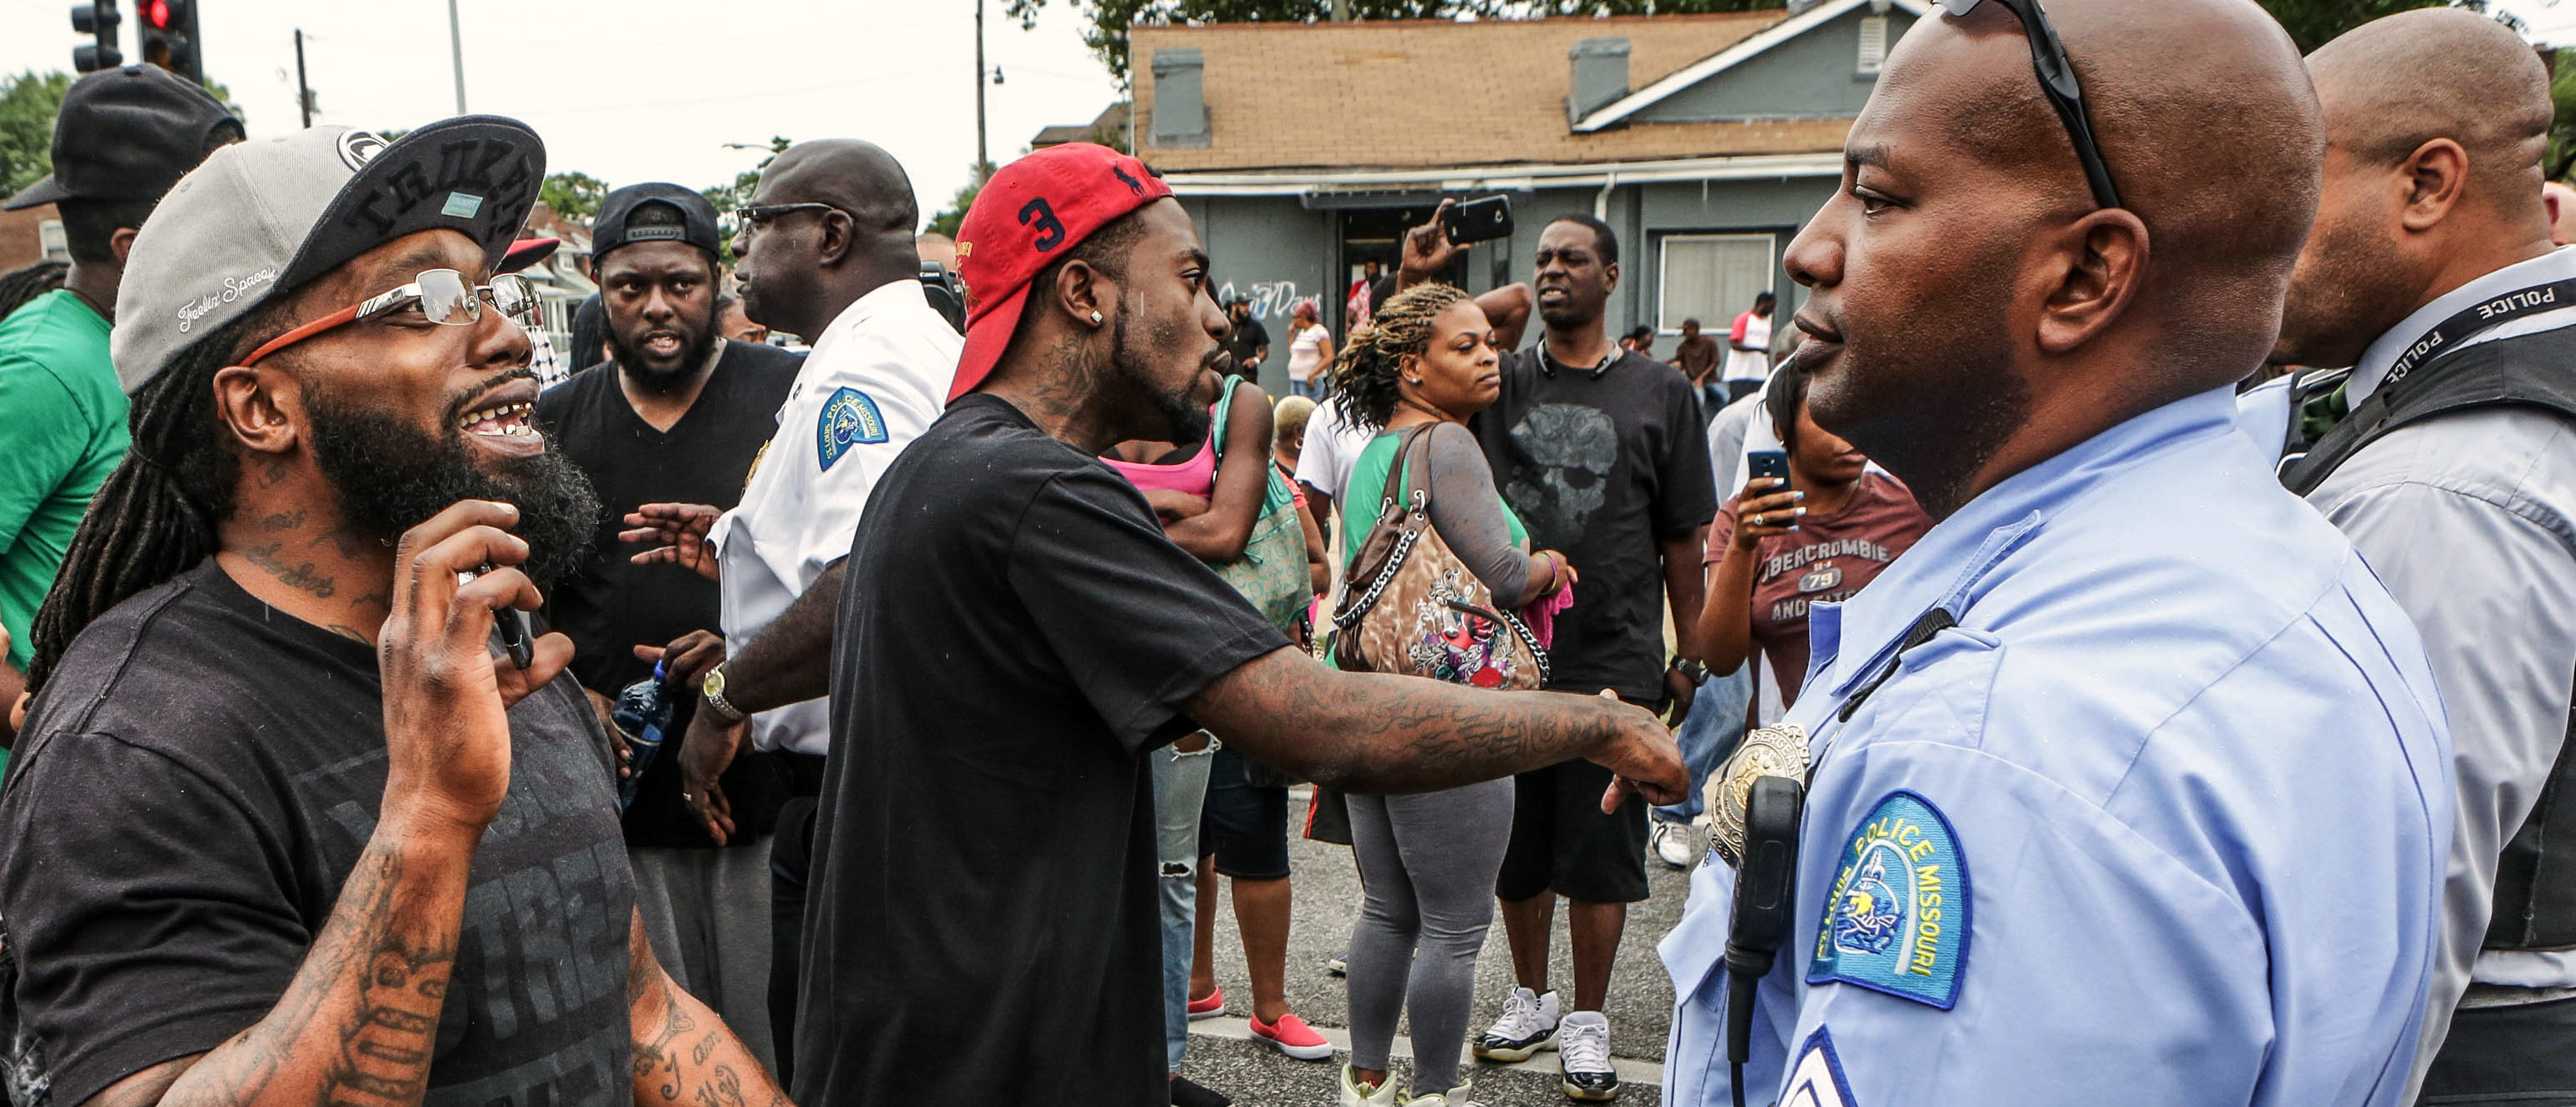 Area residents talk to police after a shooting incident in St. Louis, Missouri August 19, 2015. Police fatally shot a black man they say pointed a gun at them, drawing angry crowds and recalling the racial tensions sparked by the killing of an unarmed African-American teen in nearby Ferguson, Missouri, just over a year ago. REUTERS/Lawrence Bryant